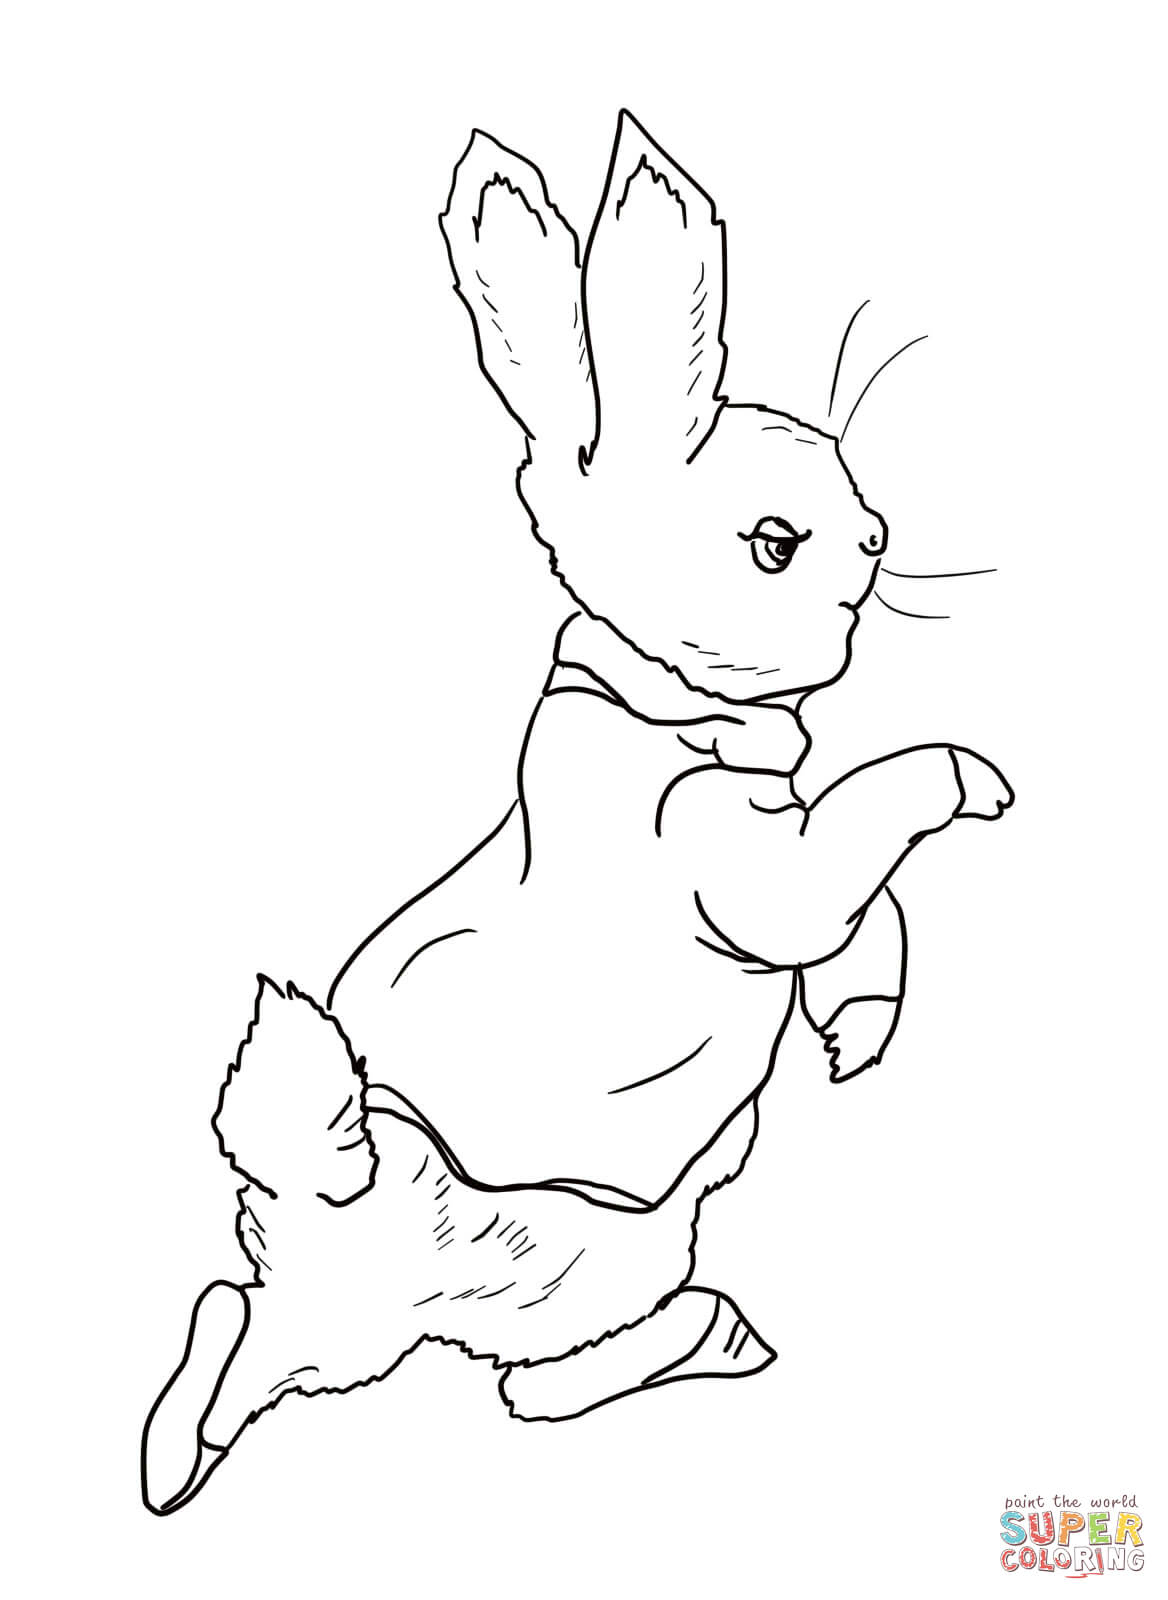 Peter Rabbit Coloring Pages | Free Coloring Pages - Free Printable Peter Rabbit Coloring Pages